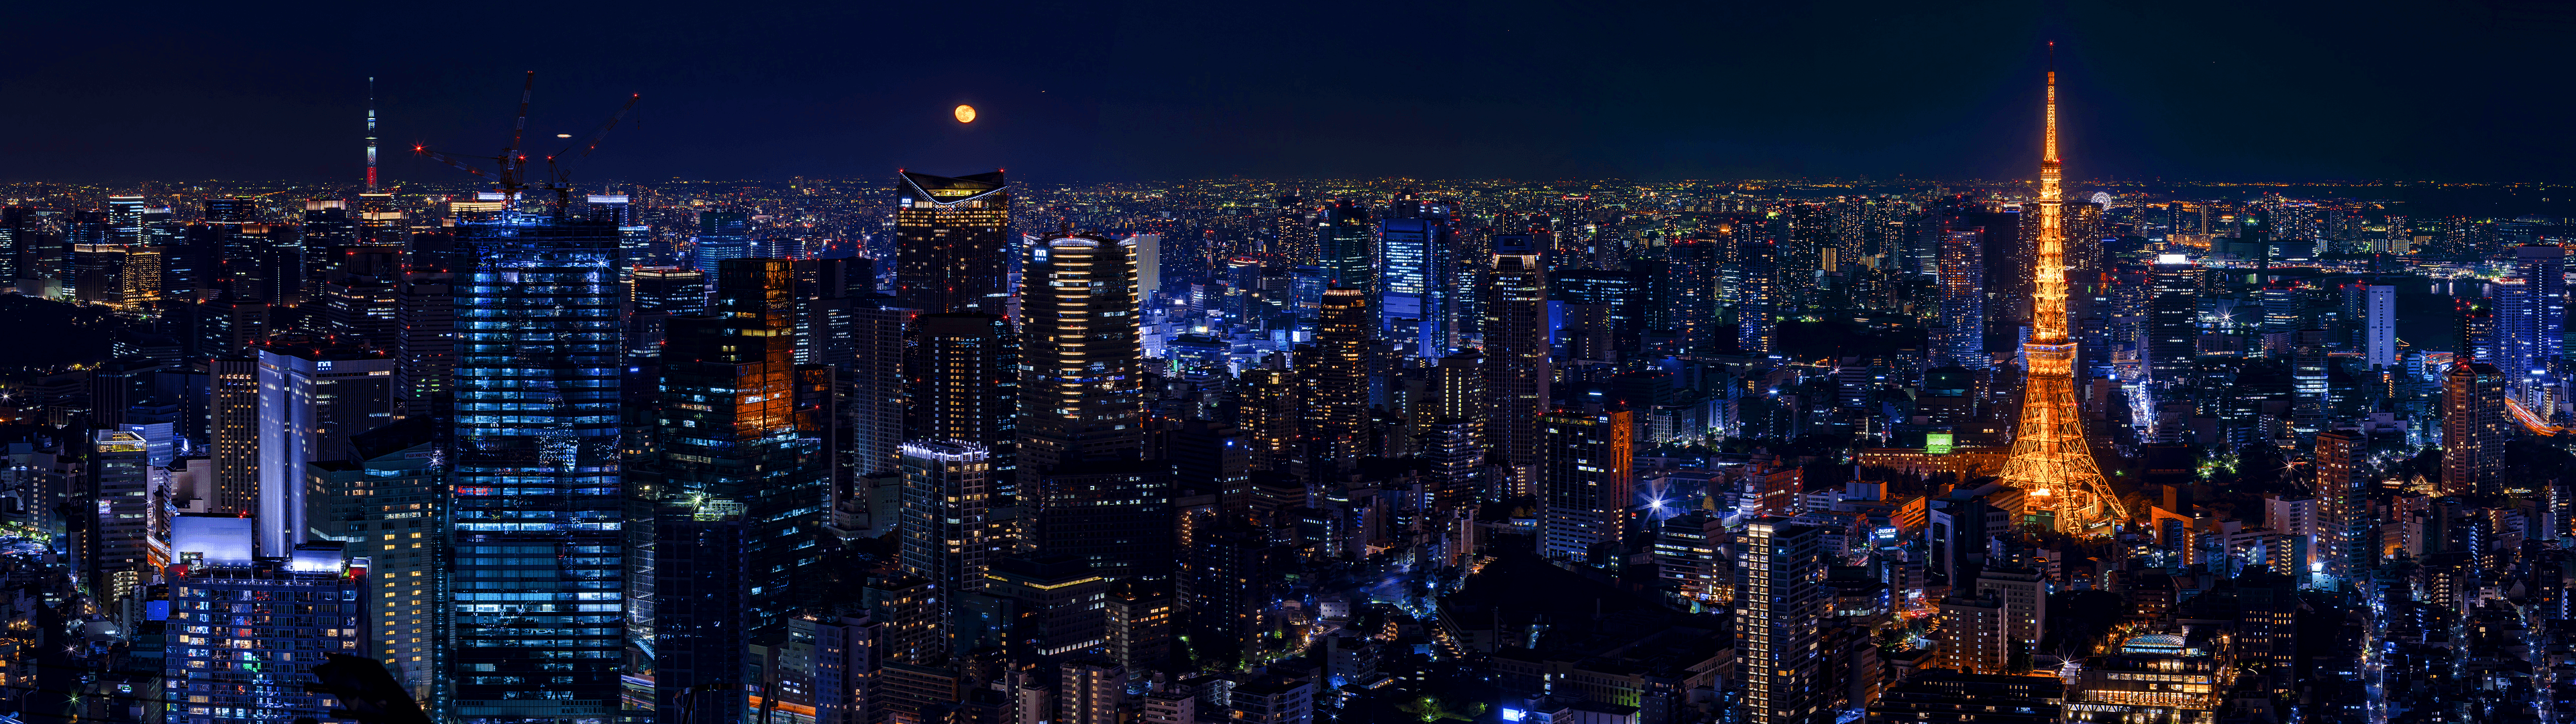 3840 X 1080 City Wallpapers - Top Free